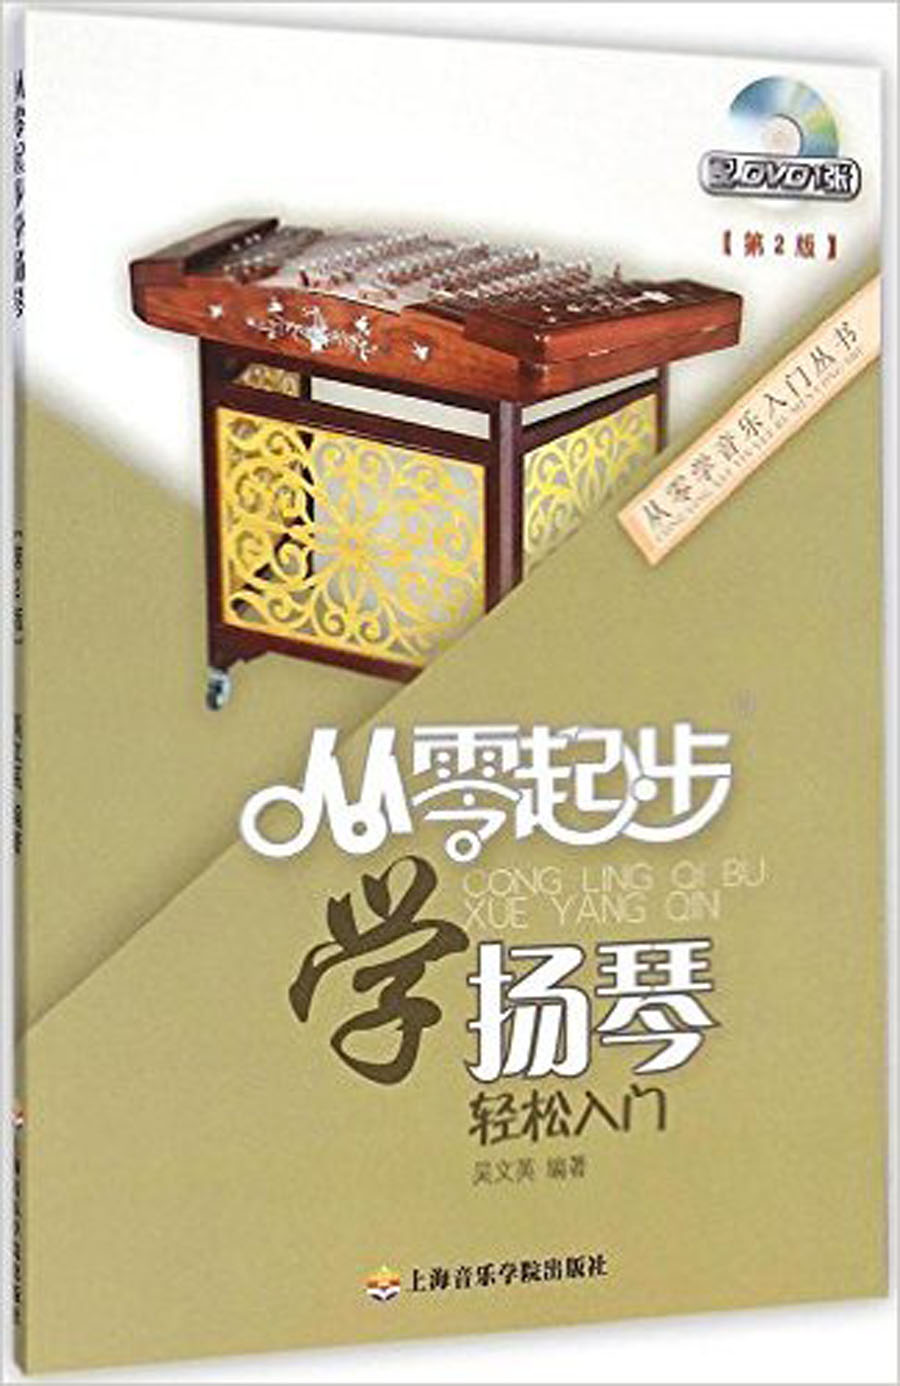 Instruction Of Learning Yang Qin From Zero- Revised Version Including DVD (Chinese Edition)